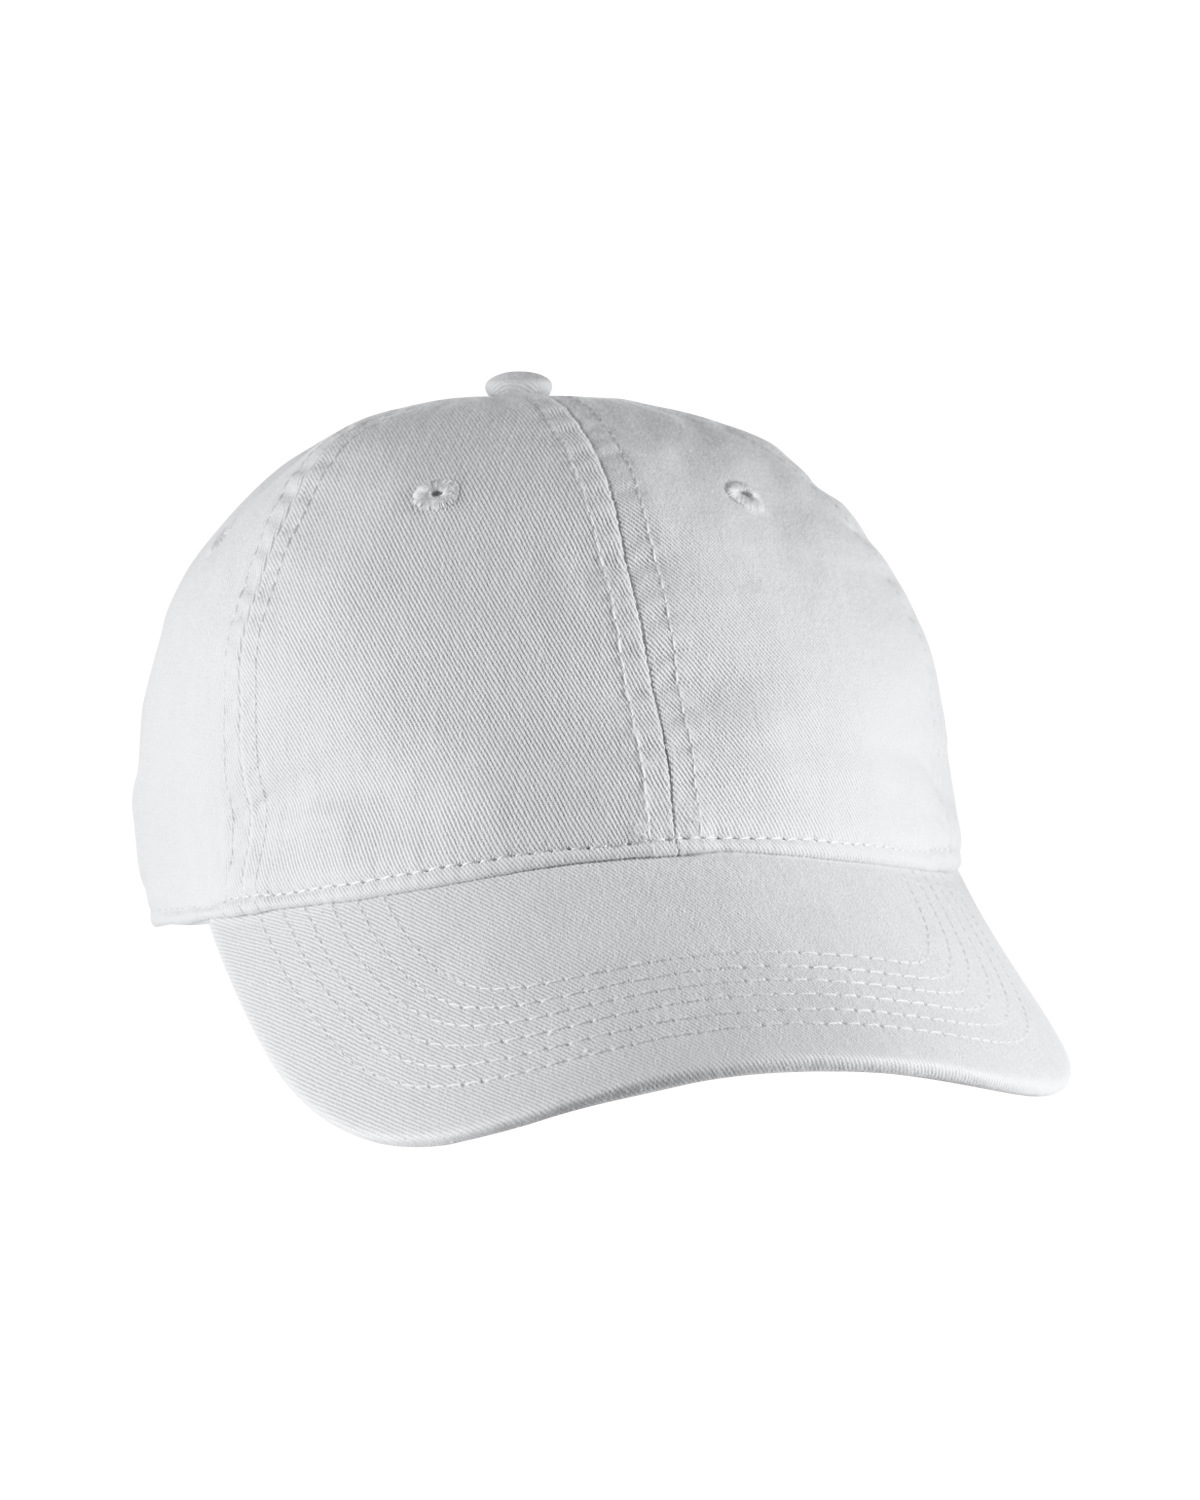 Direct-Dyed Canvas Baseball Cap